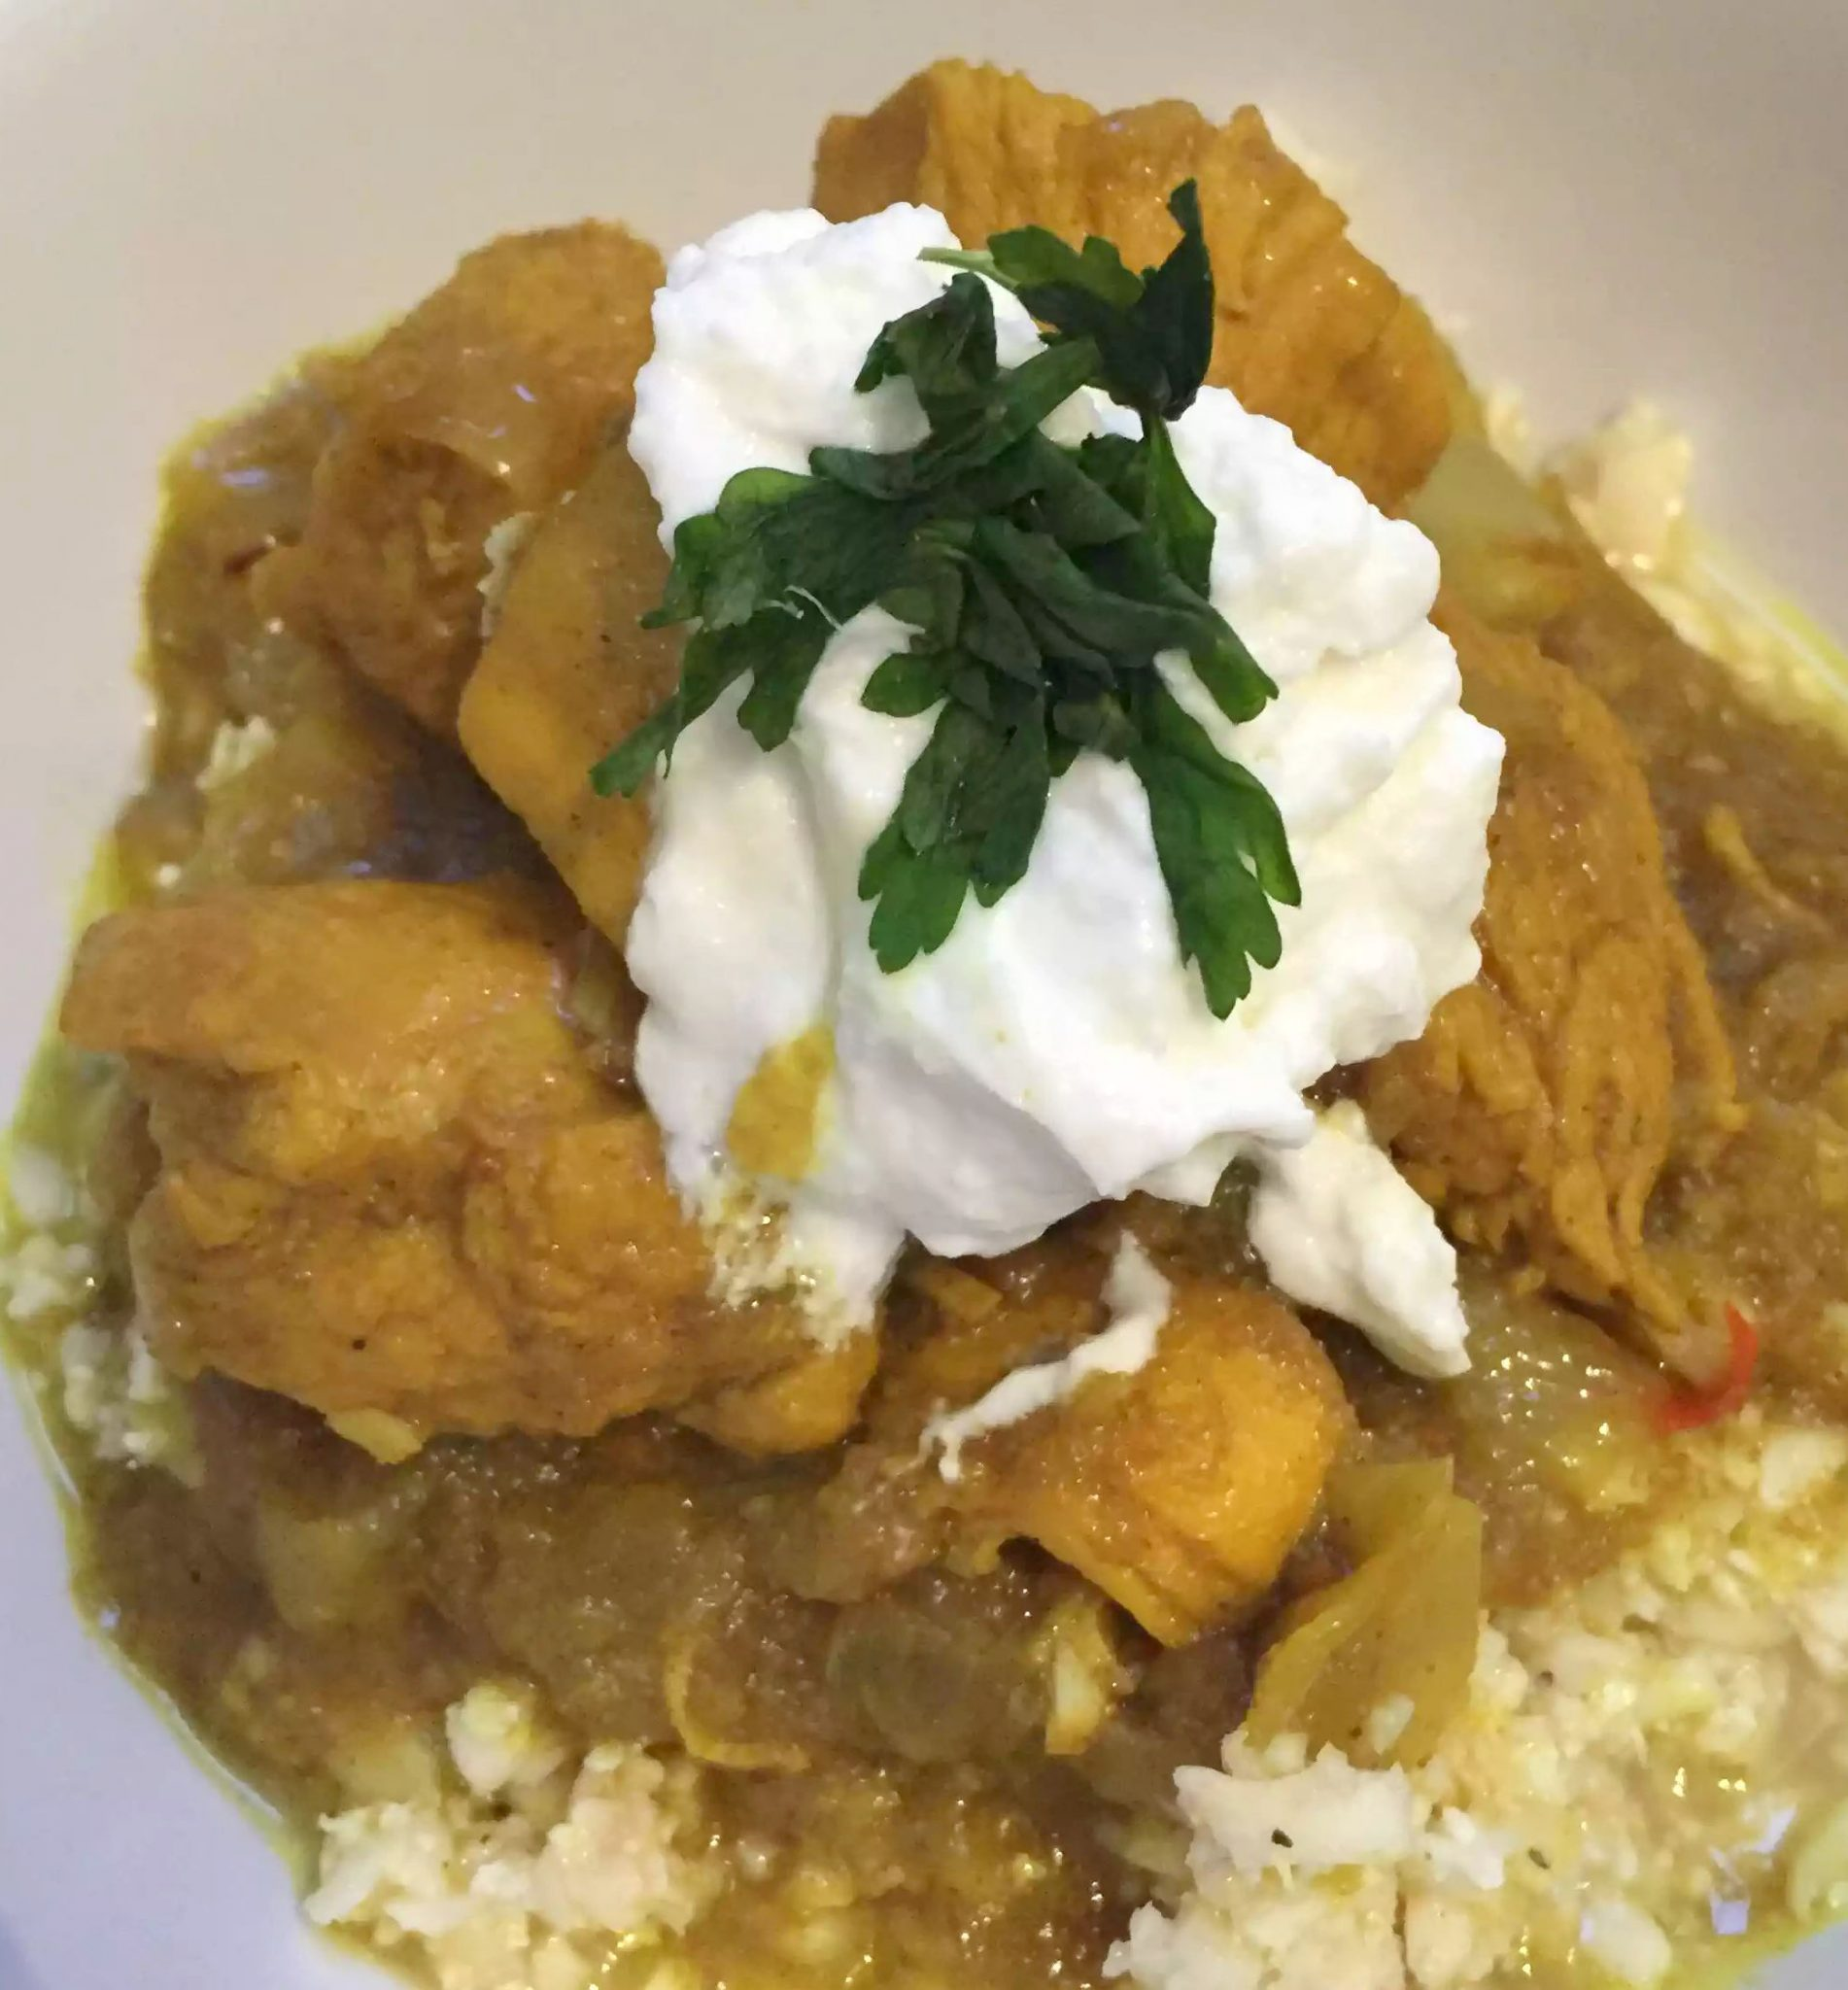 Chicken Curry Cauliflower Rice Turmeric Chilli Cardamom Garam Masala Cumin Coriander Lime